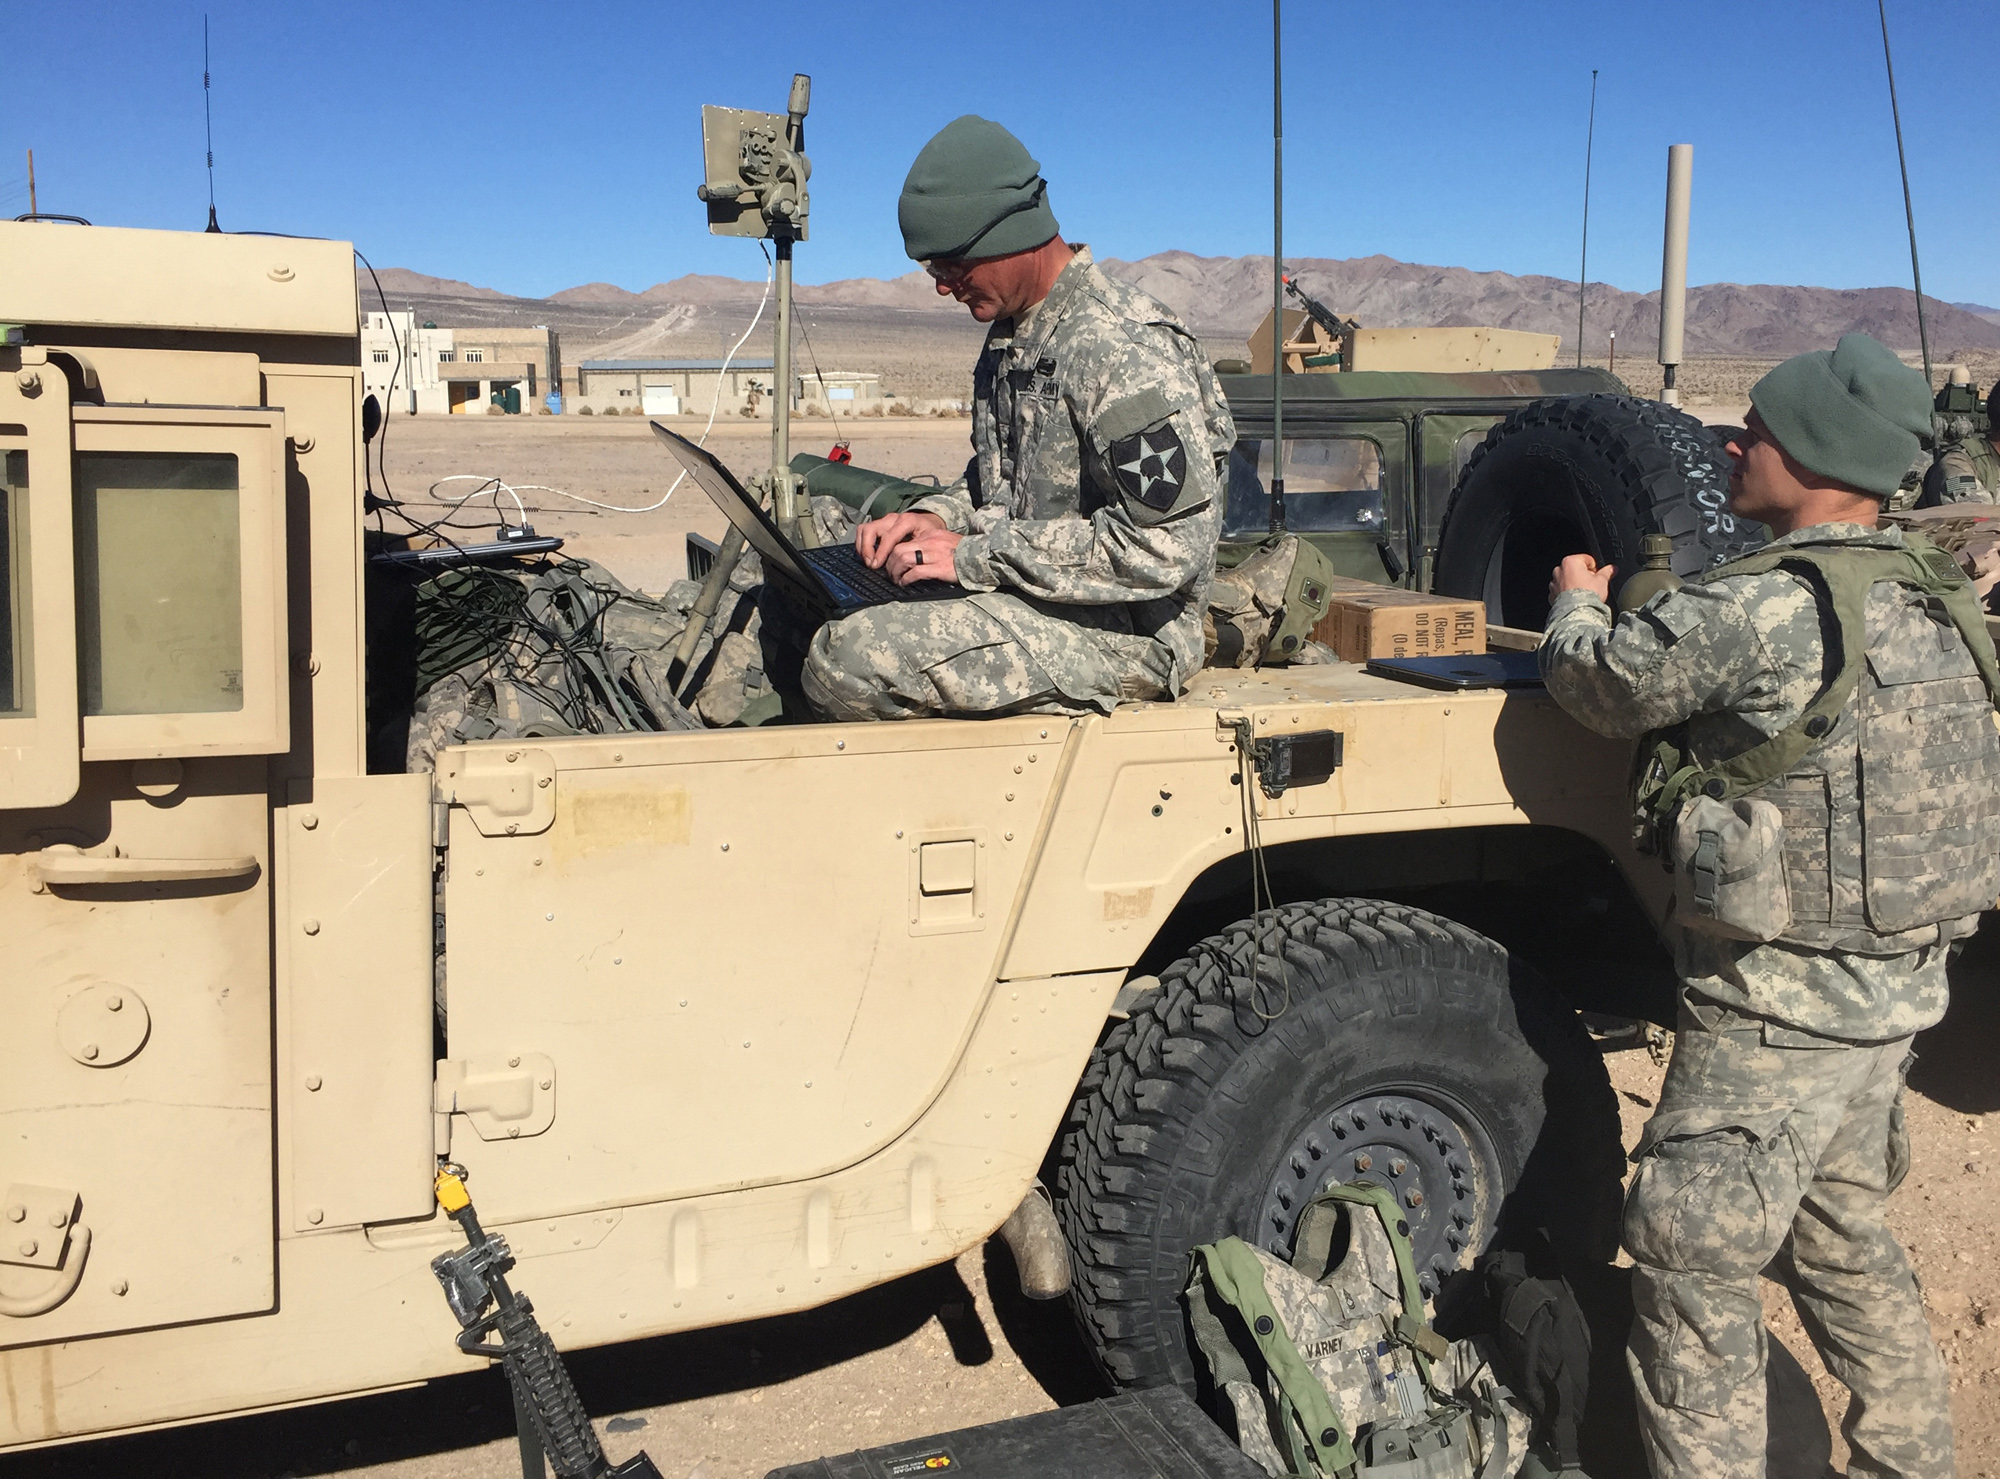 Soldiers with the 780th Military Intelligence Brigade conduct cyberspace operations during a training rotation at the National Training Center at Fort Irwin, California, in January 2016. The Fort Meade, Maryland-based 780th was one of several cyber organizations that took part in the rotation as part of a pilot program designed to help the Army develop how it will build and employ cyber in its tactical formations. (U.S. Army photo)